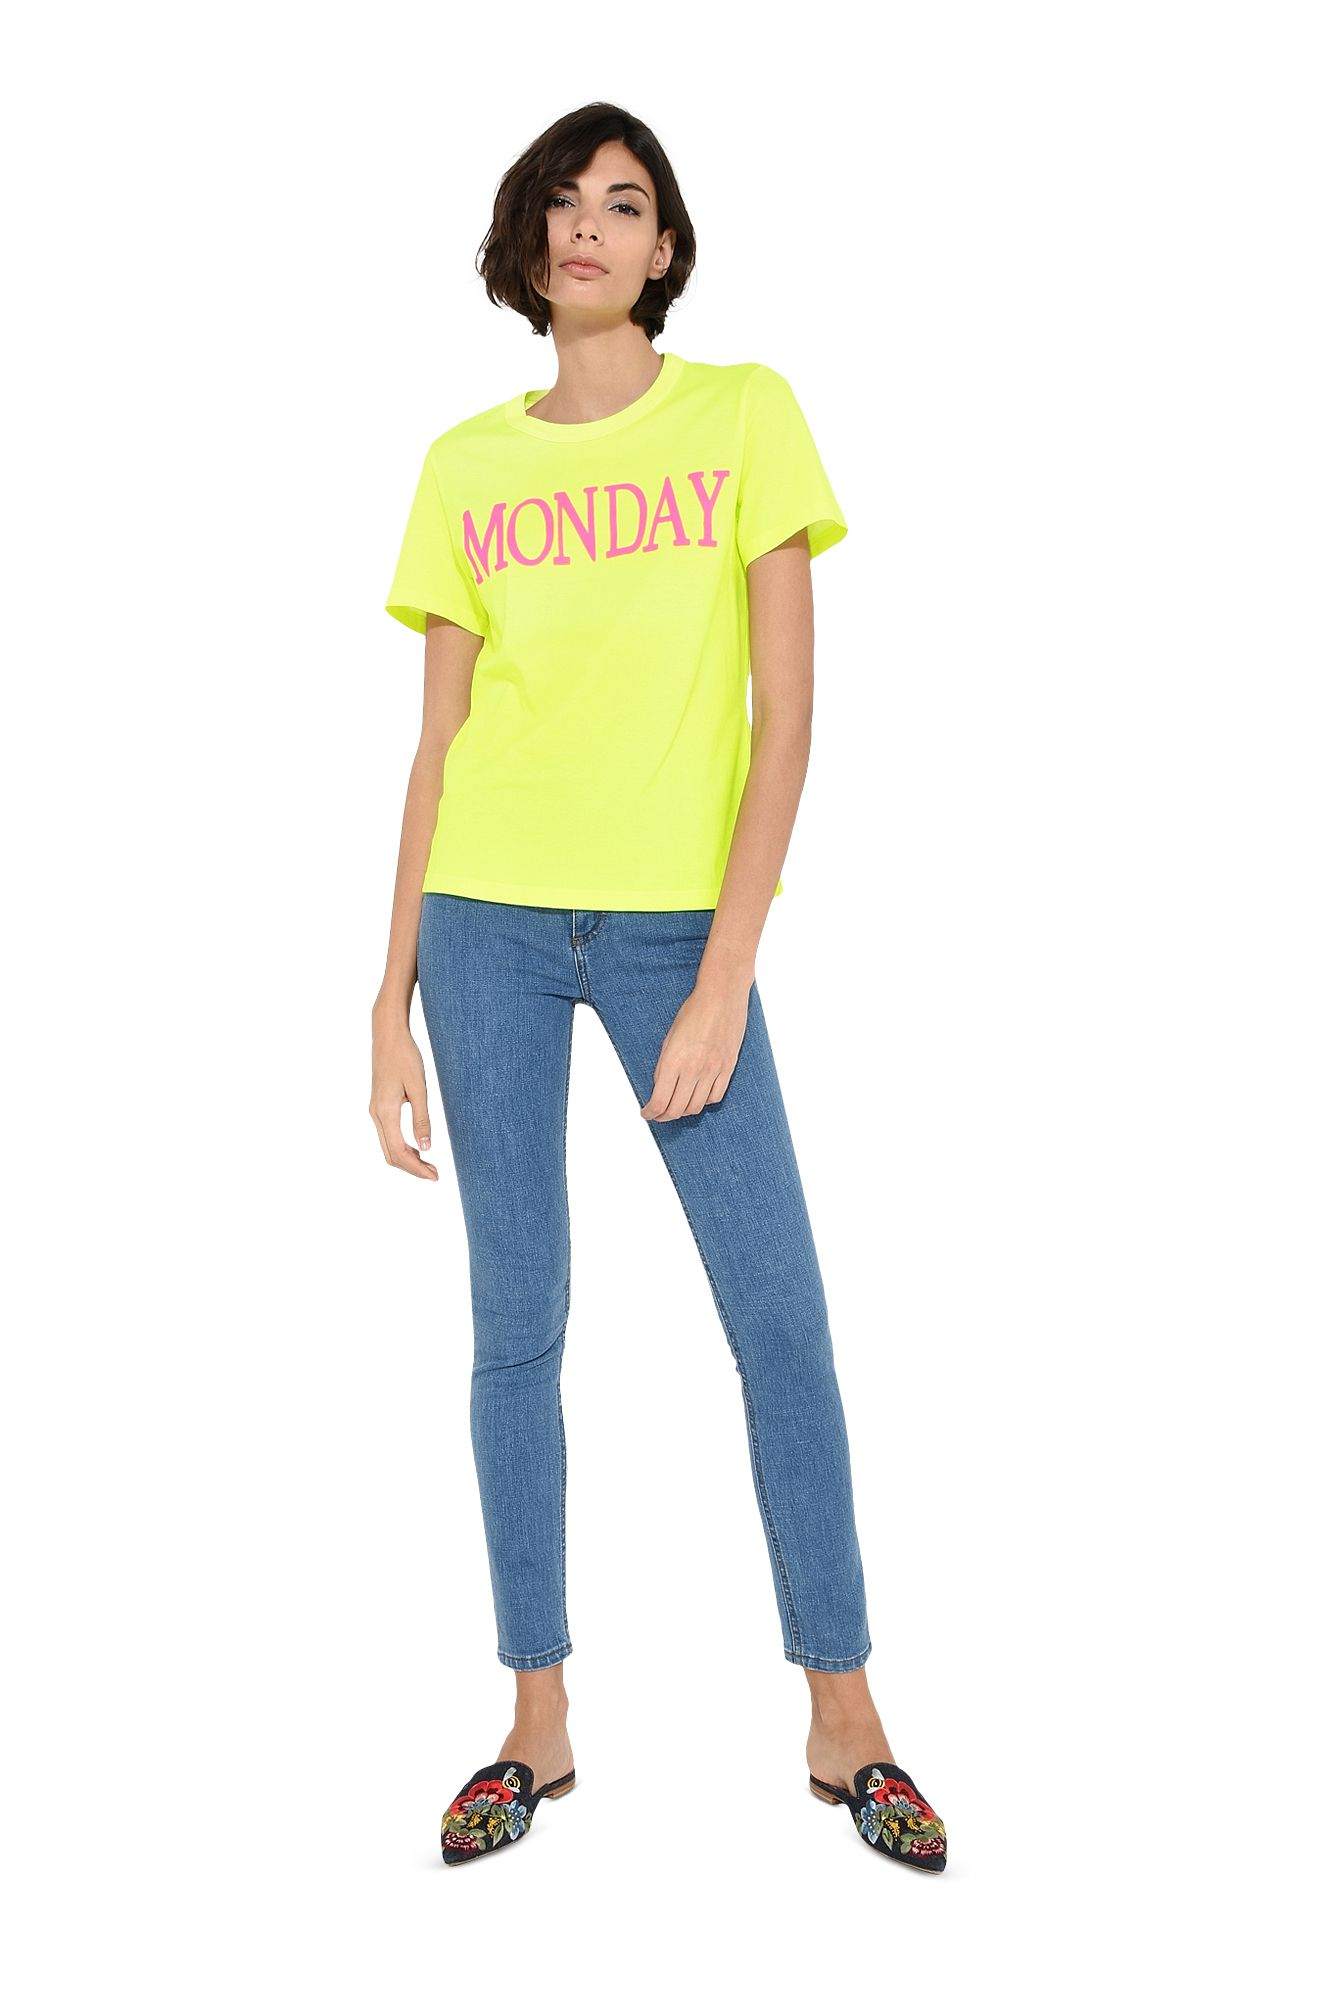 Monday fluo T-shirt